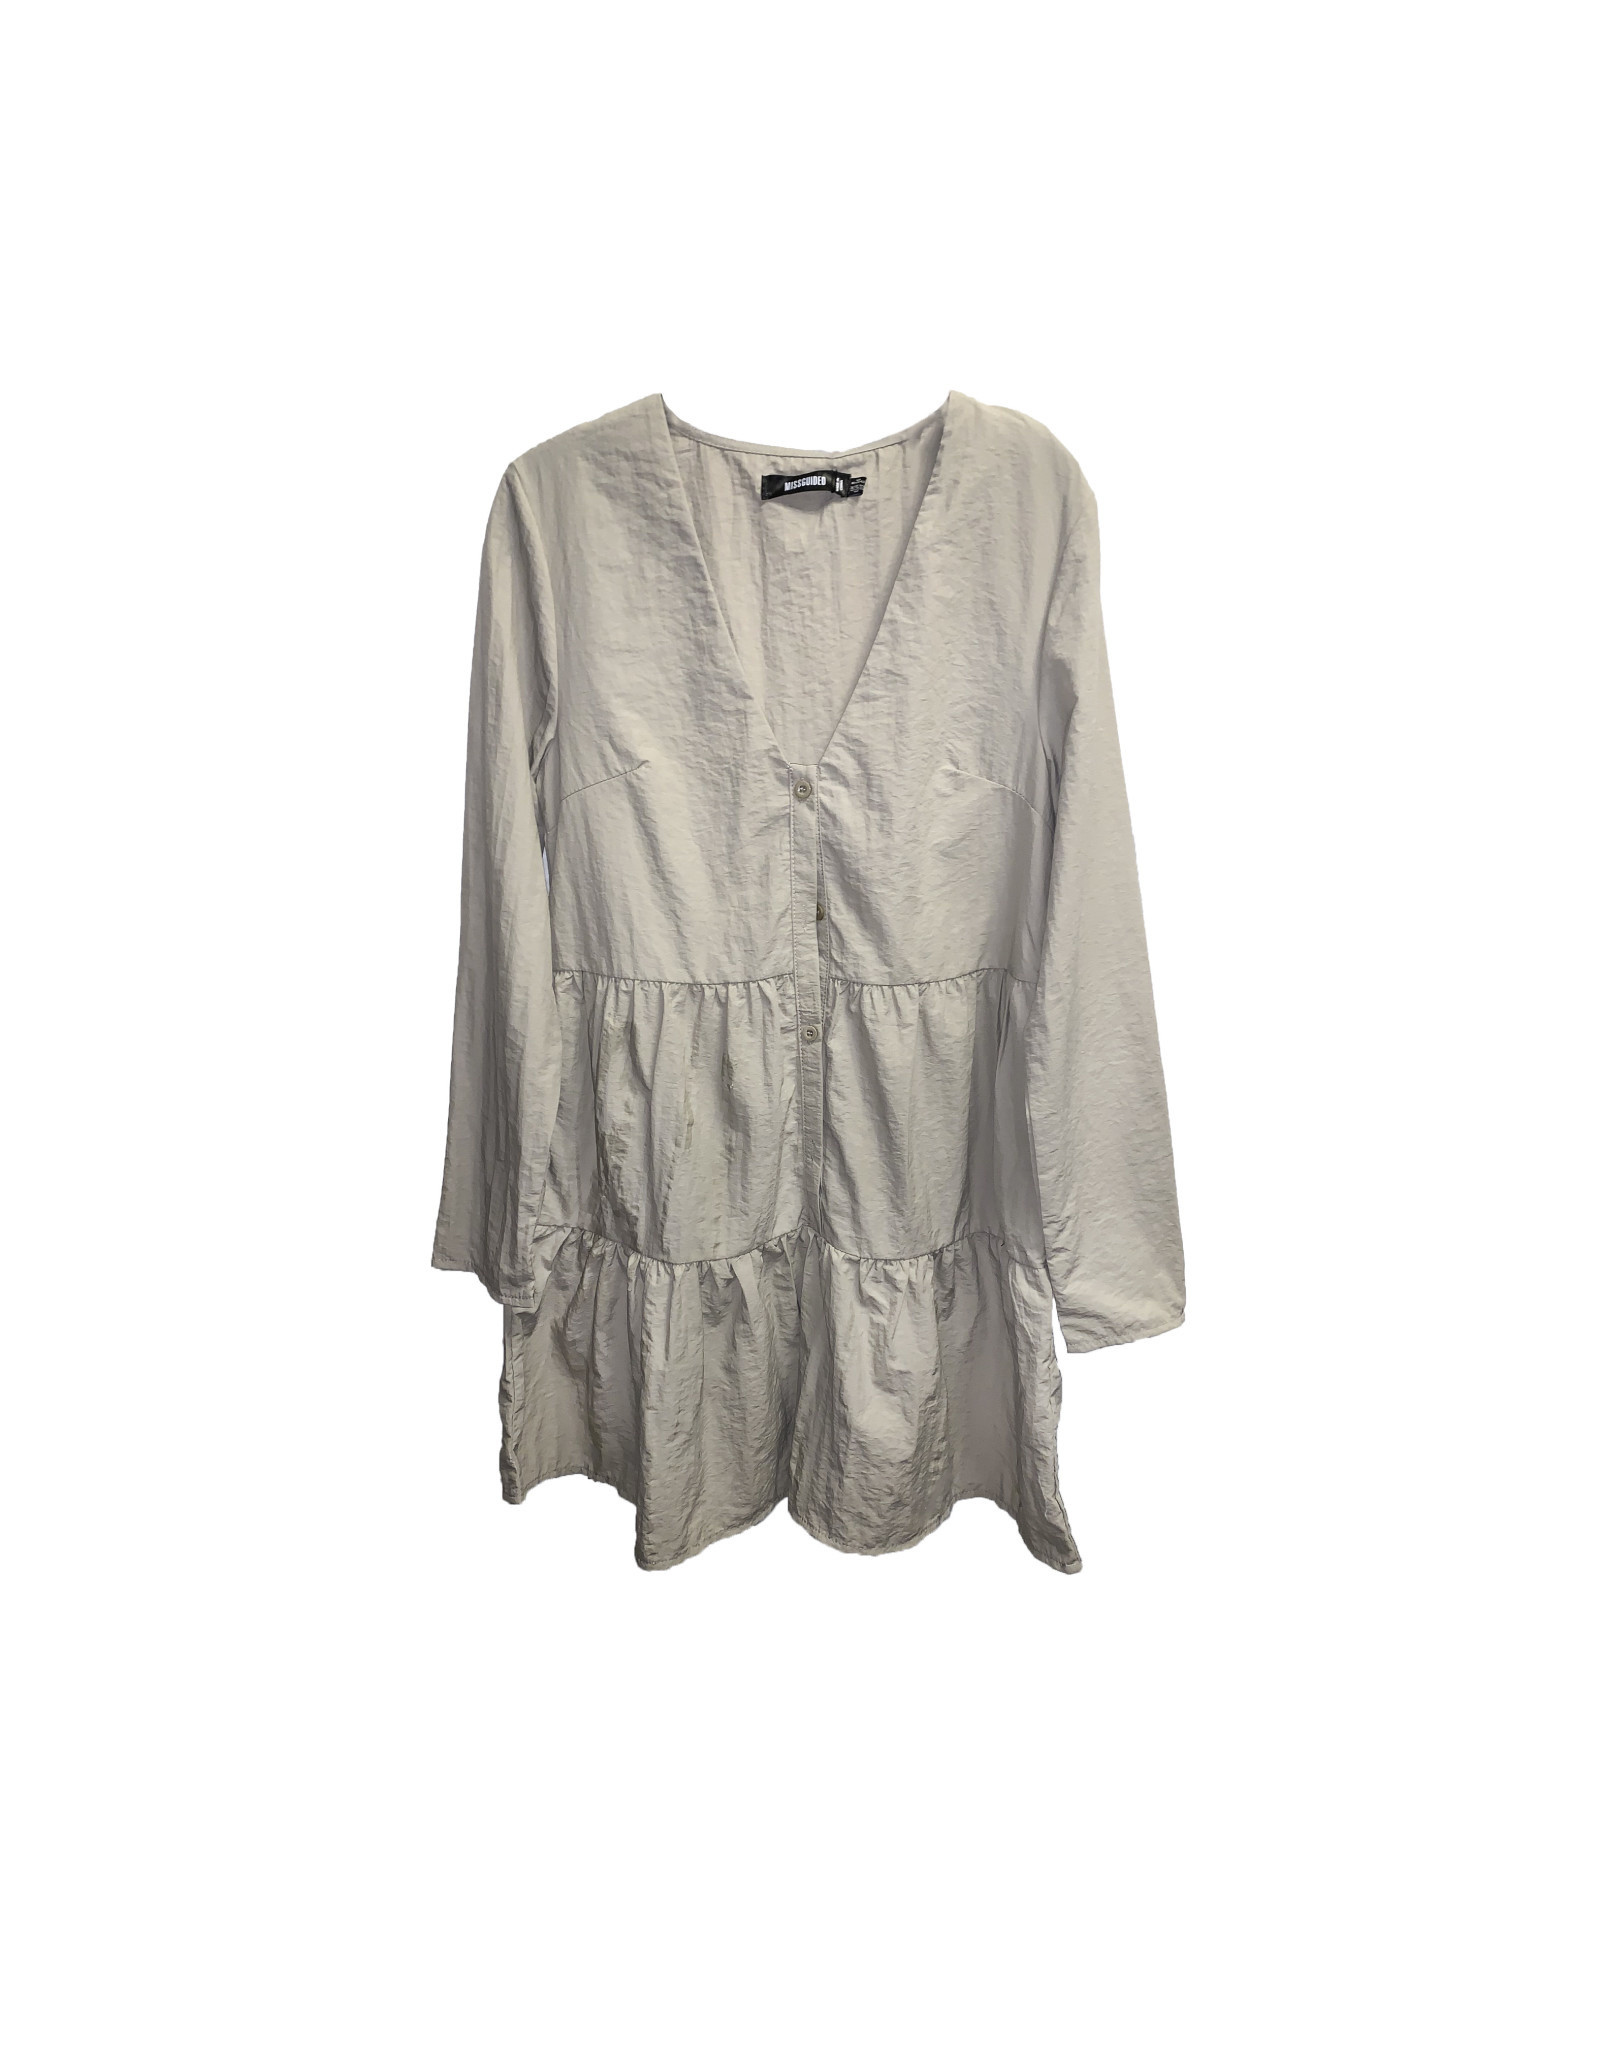 MISSGUIDED MISSGUIDED Shirt Dress